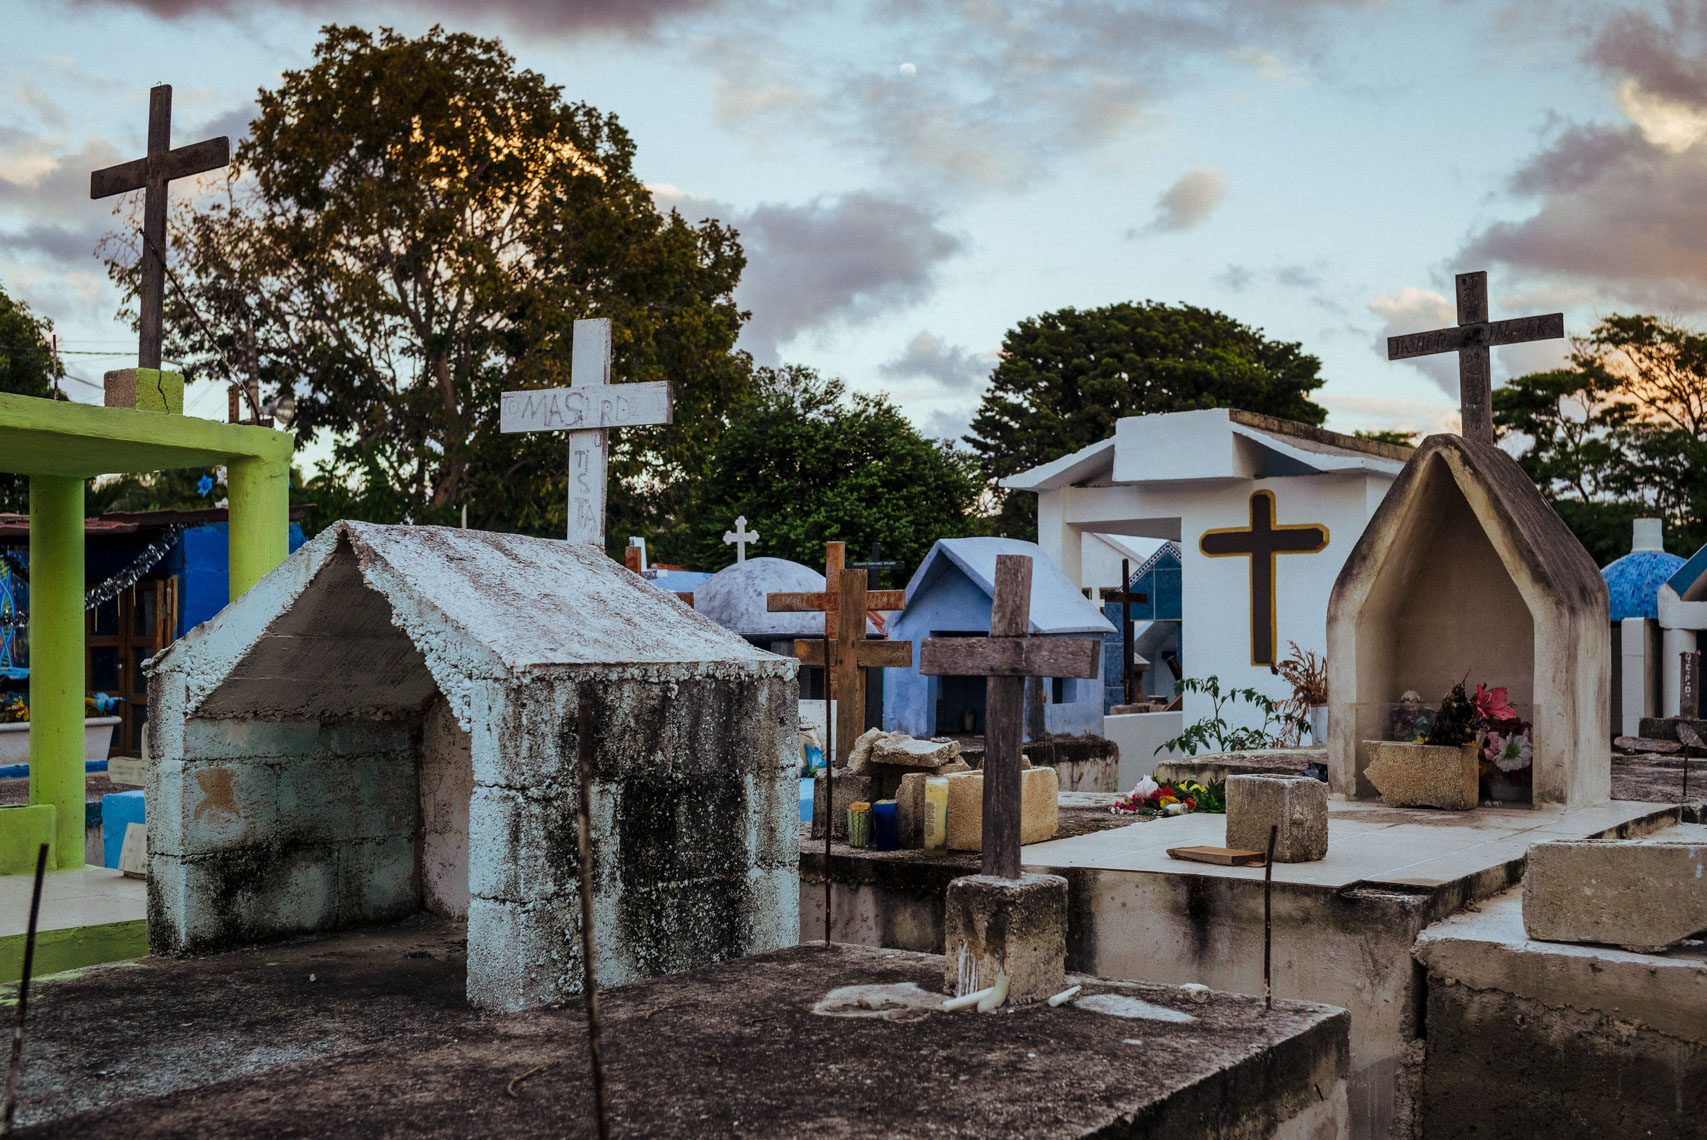 richard-schabetsberger-cemetries-of-mexico-004